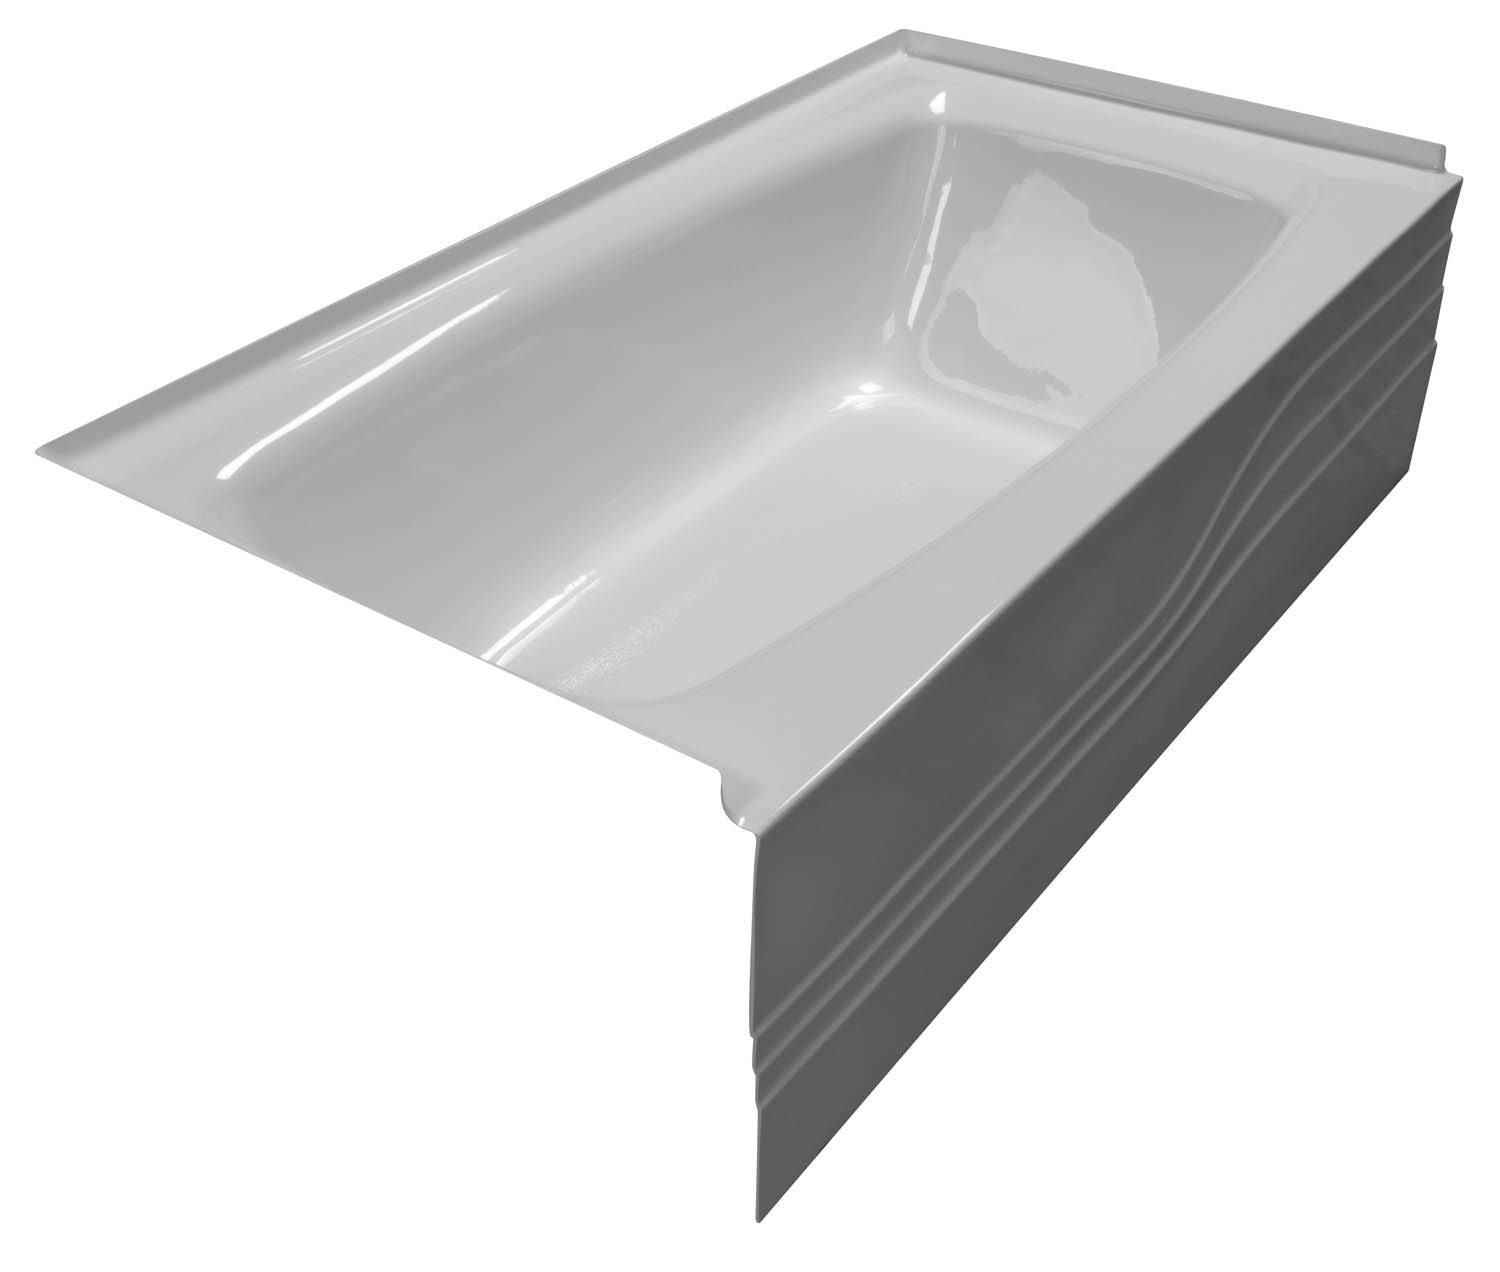 32x60 Skirted Bathtub BR-27 Left Hand - BathTubs.com